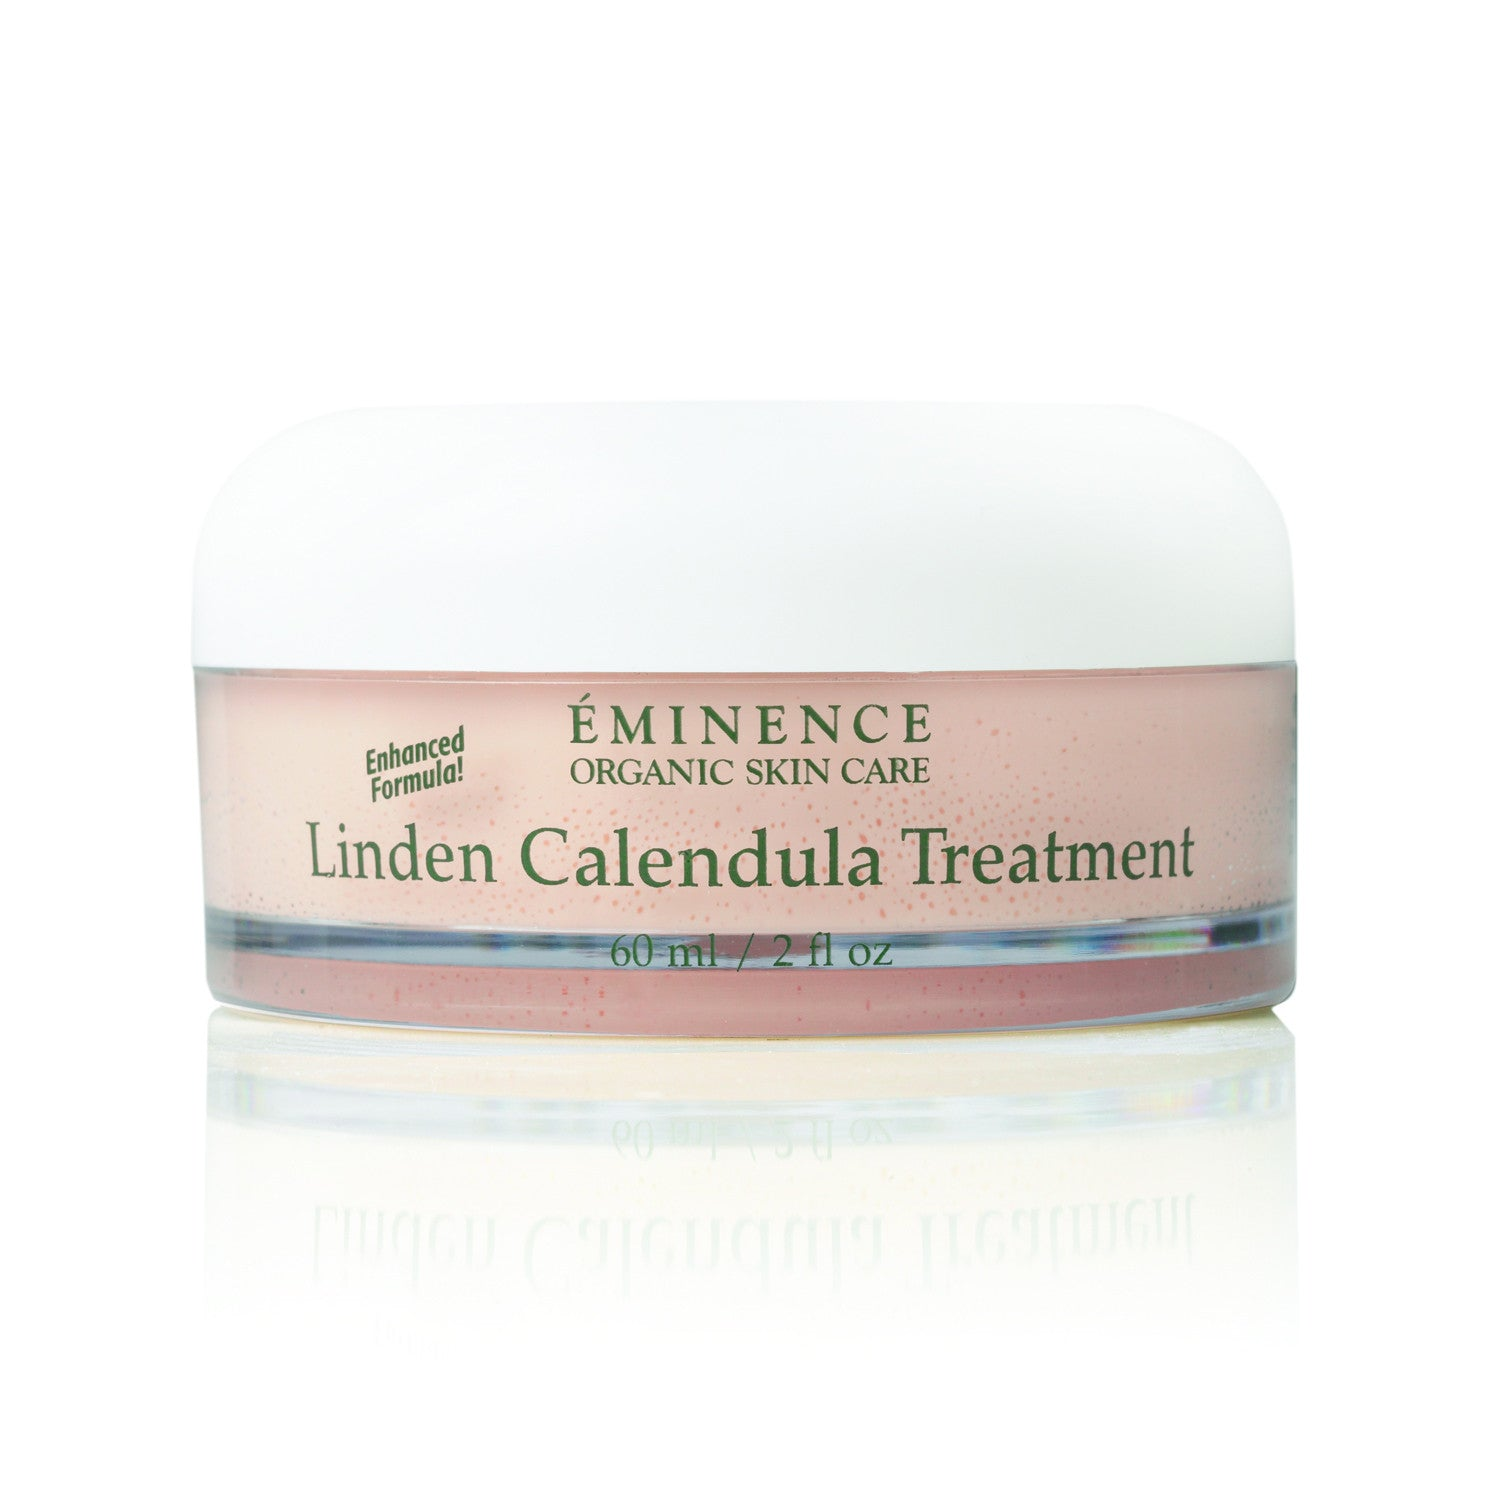 Linden Calendula Treatment